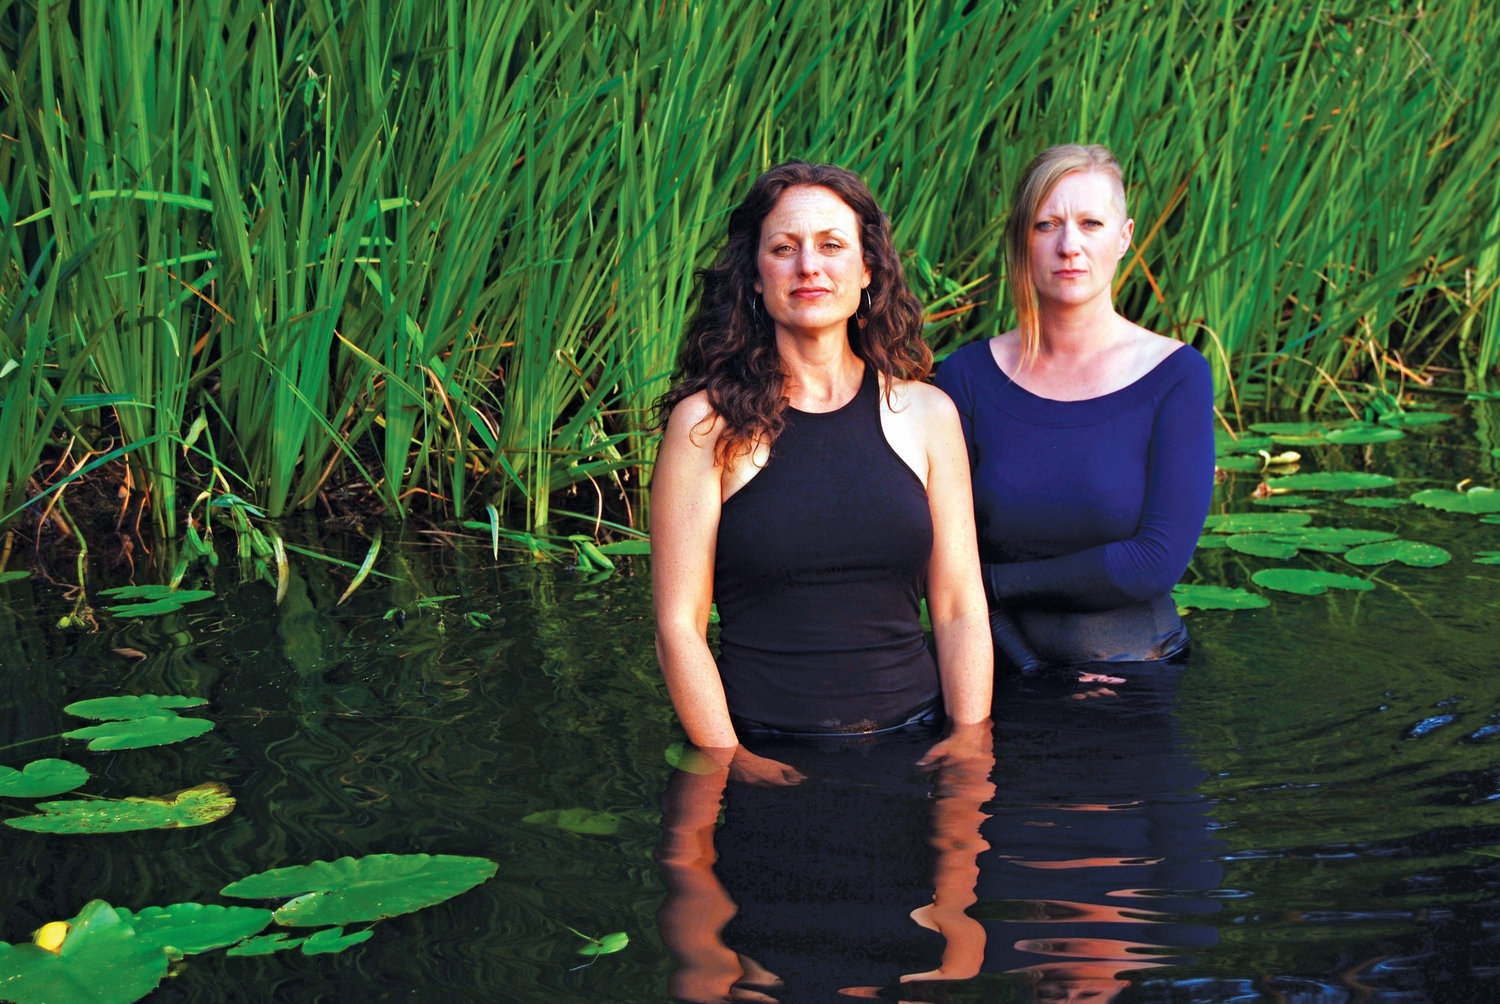 Ara Lee and Beth Wood will perform as Stand and Sway April 26 at Northwind Arts Center.